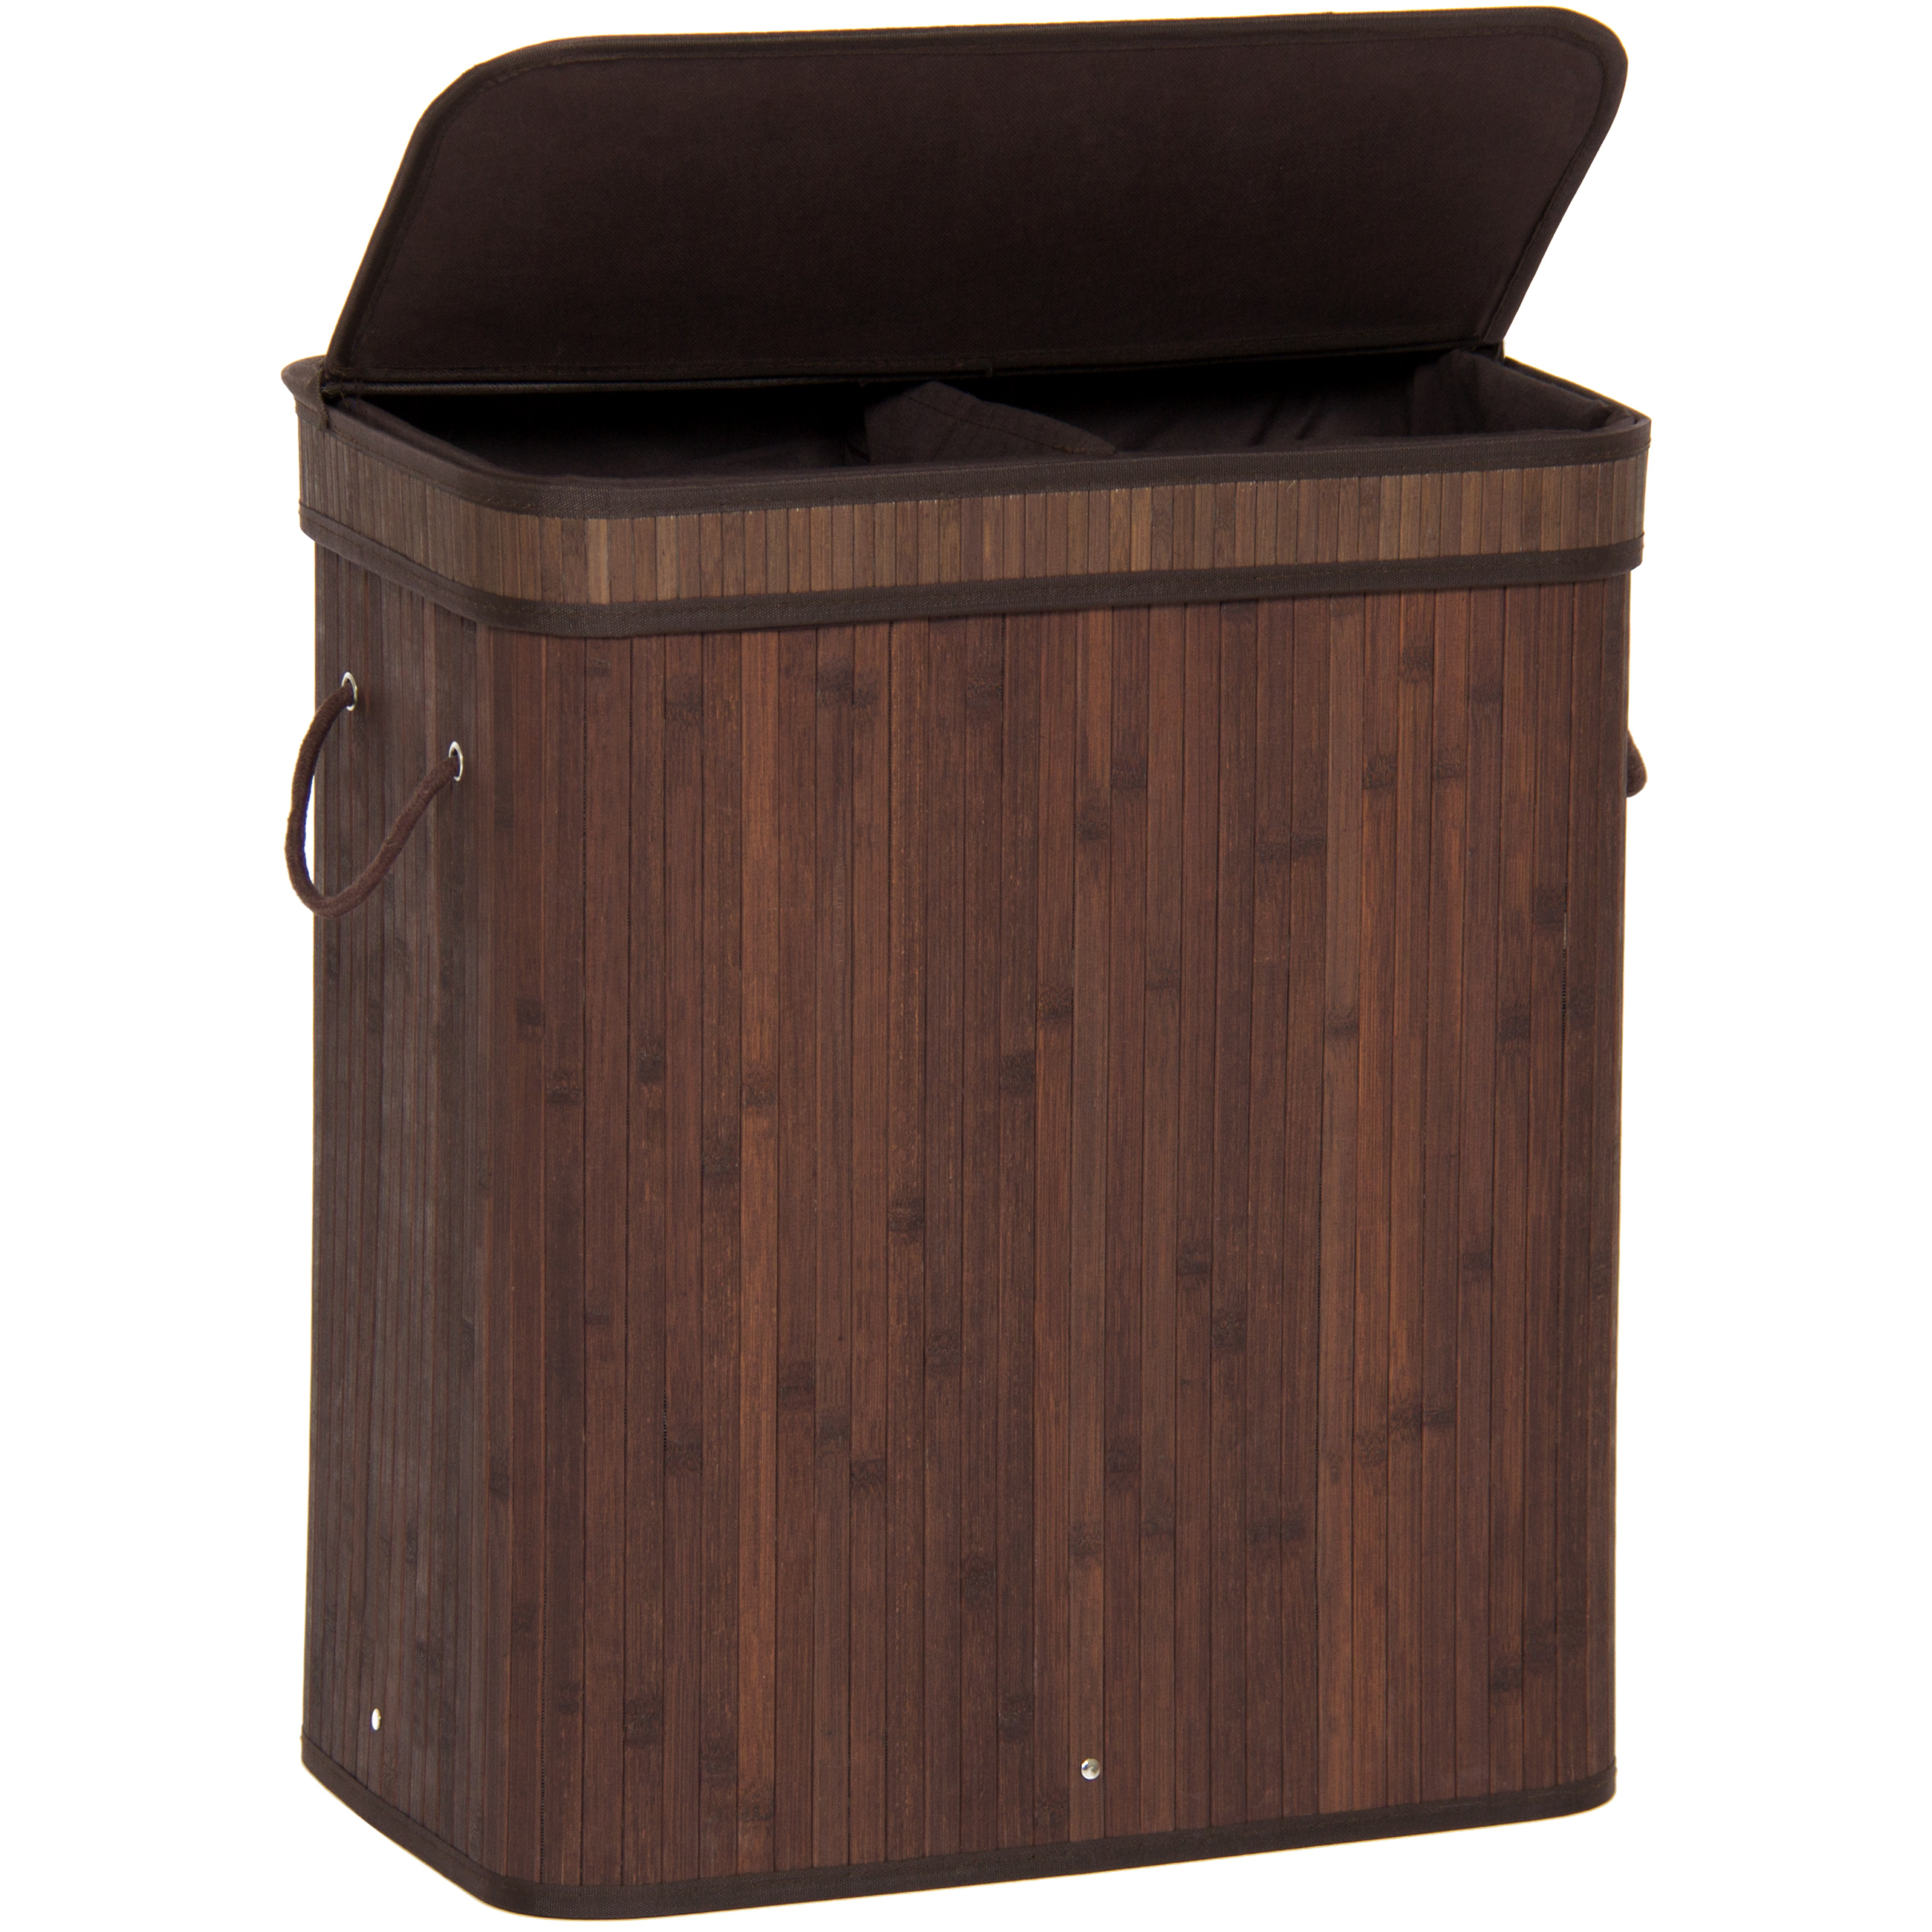 Best choice products bamboo double hamper laundry basket dark brown ebay - Laundry basket lights darks colours ...